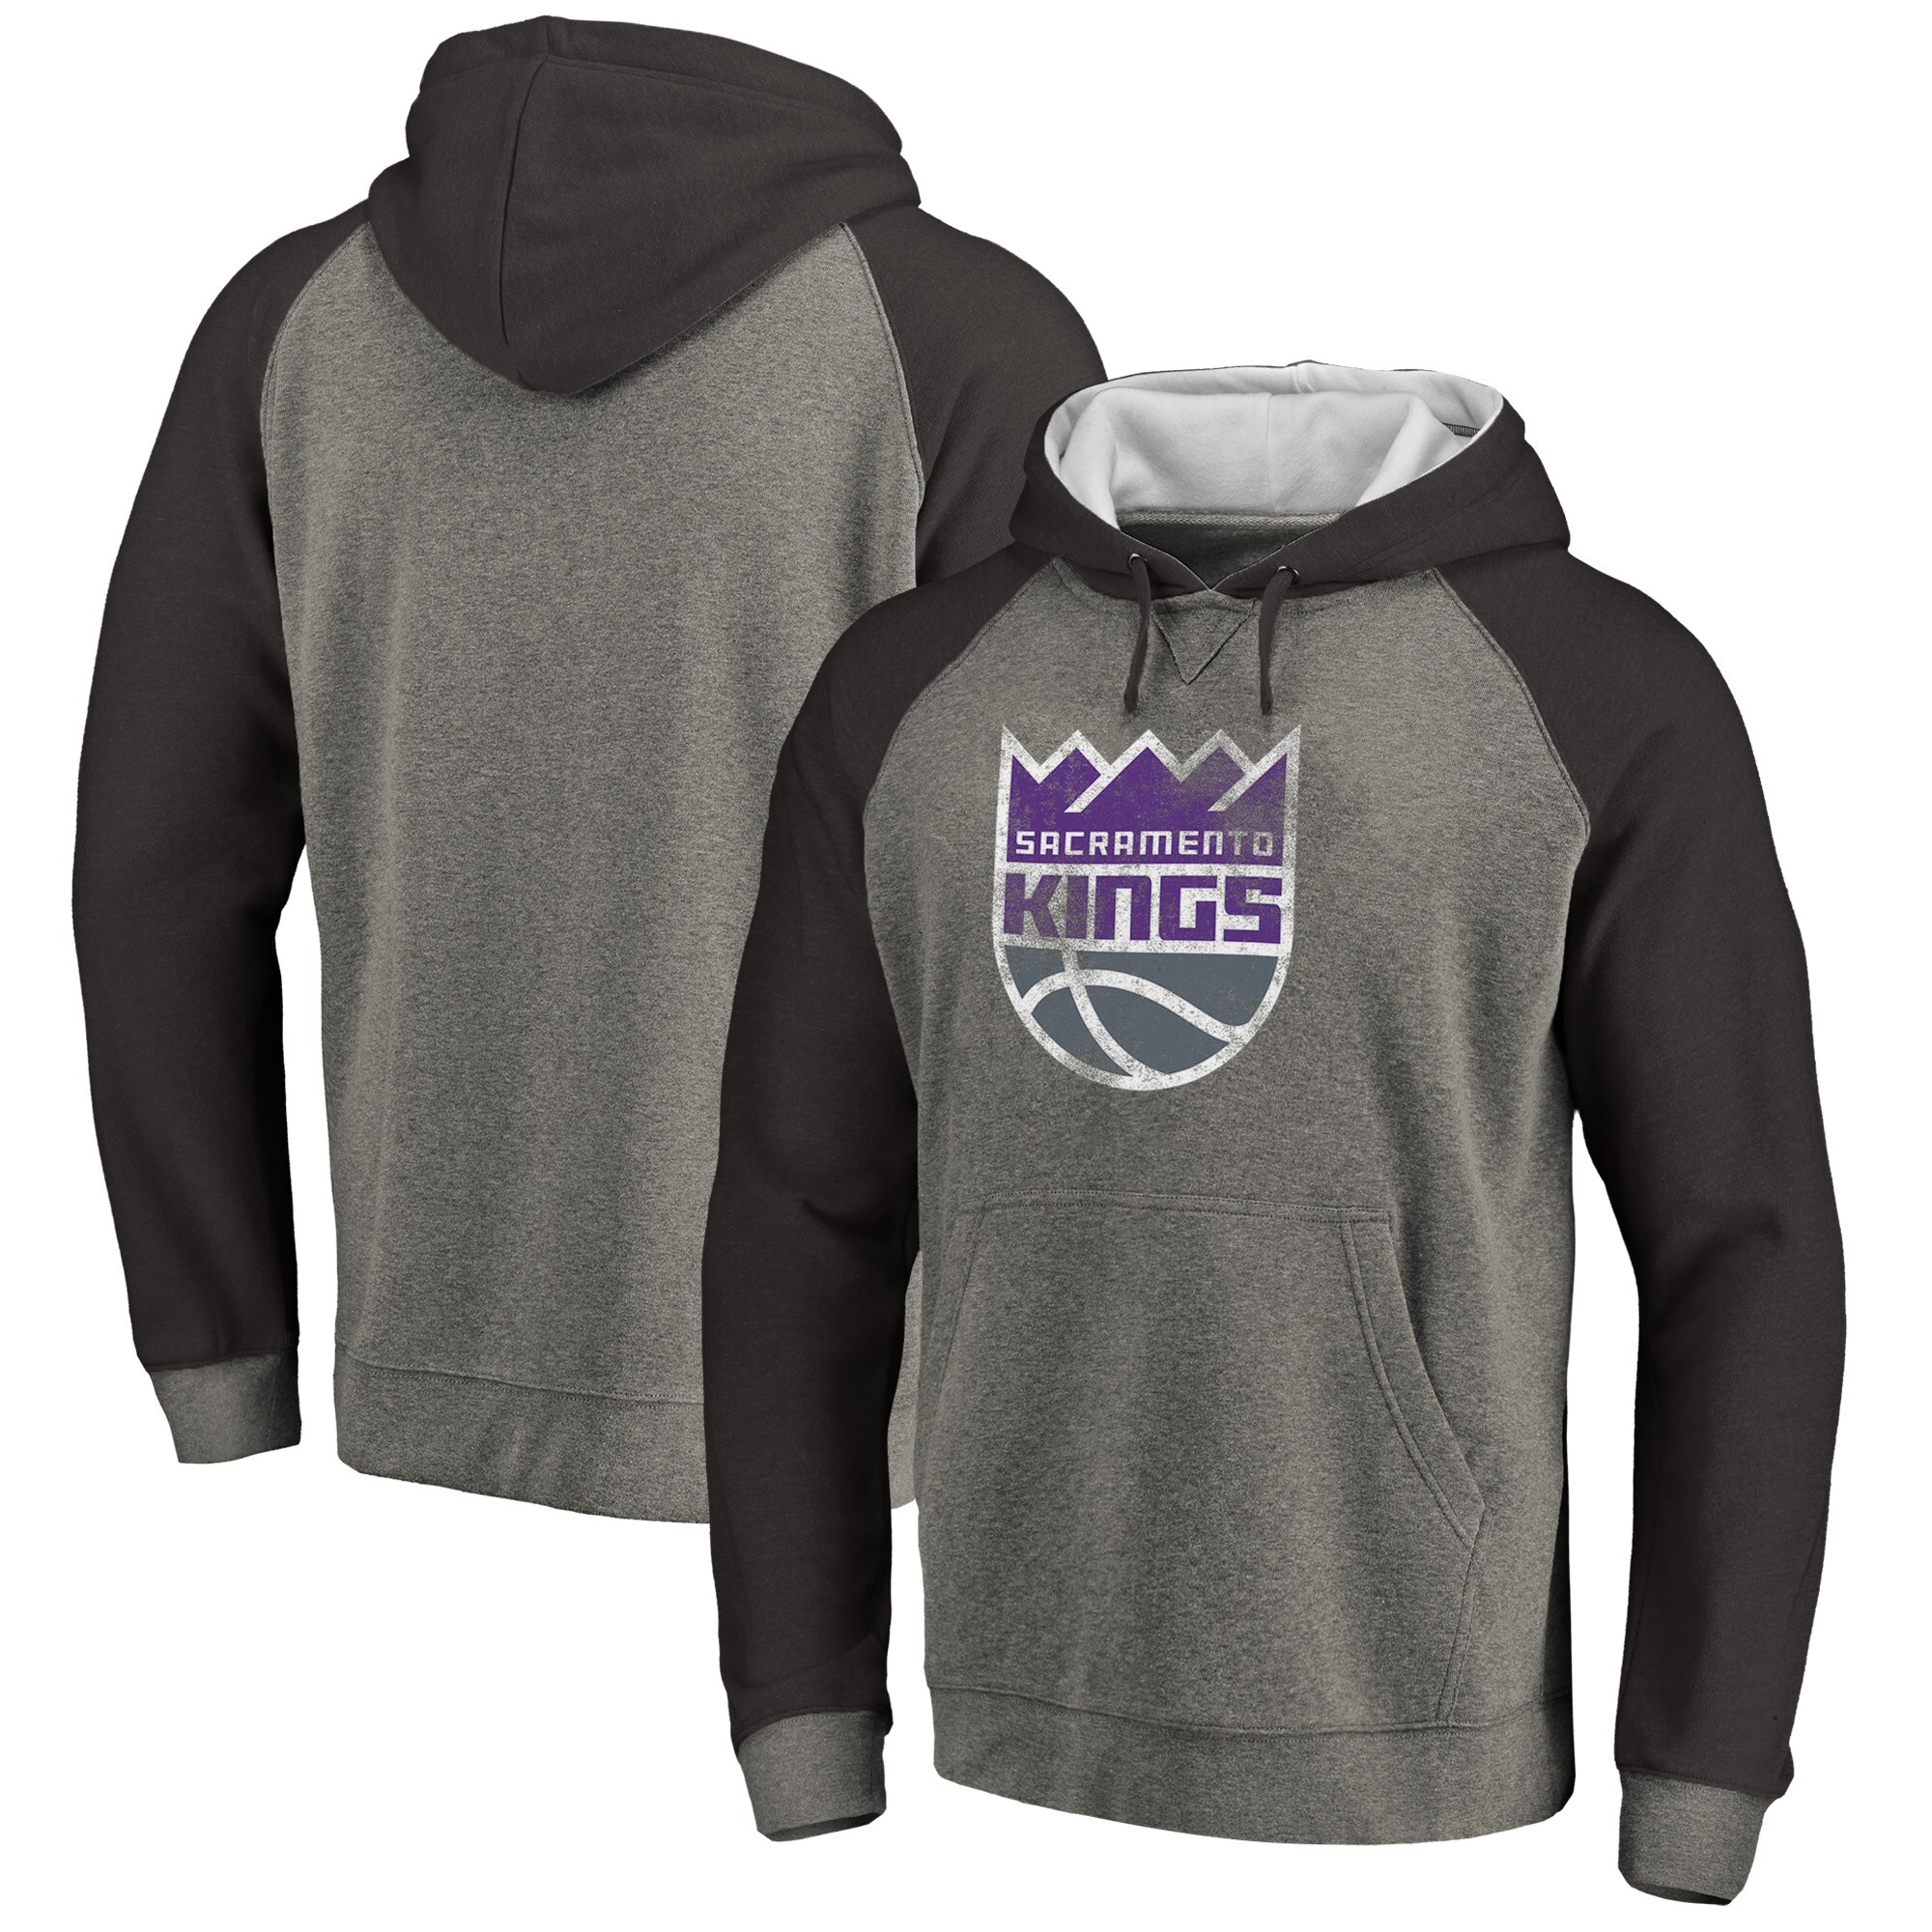 Sacramento Kings Fanatics Branded Distressed Logo Tri-Blend Pullover Hoodie - Ash/Black